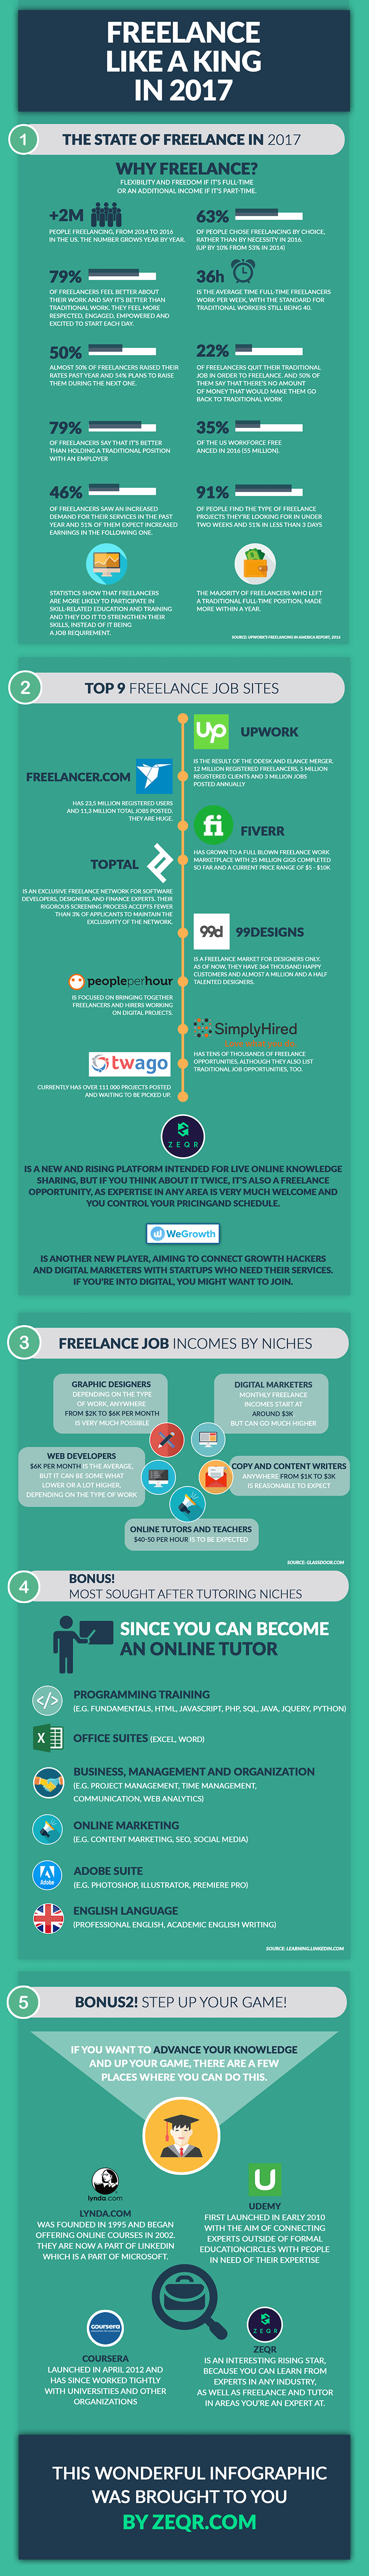 Infographic : Freelance like a king in 2017